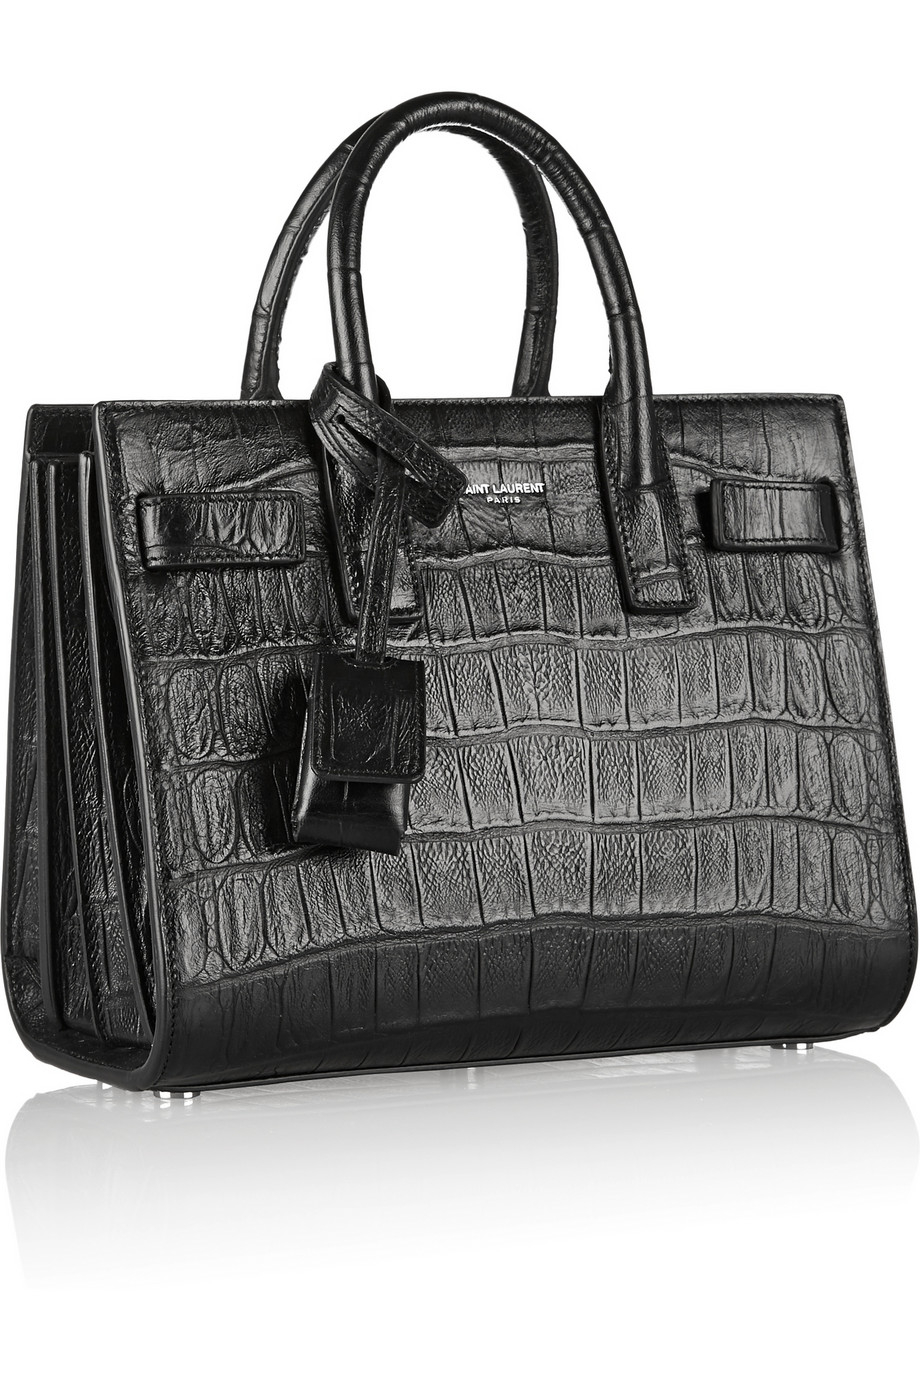 lyst saint laurent sac de jour nano croc effect leather shoulder bag in black. Black Bedroom Furniture Sets. Home Design Ideas